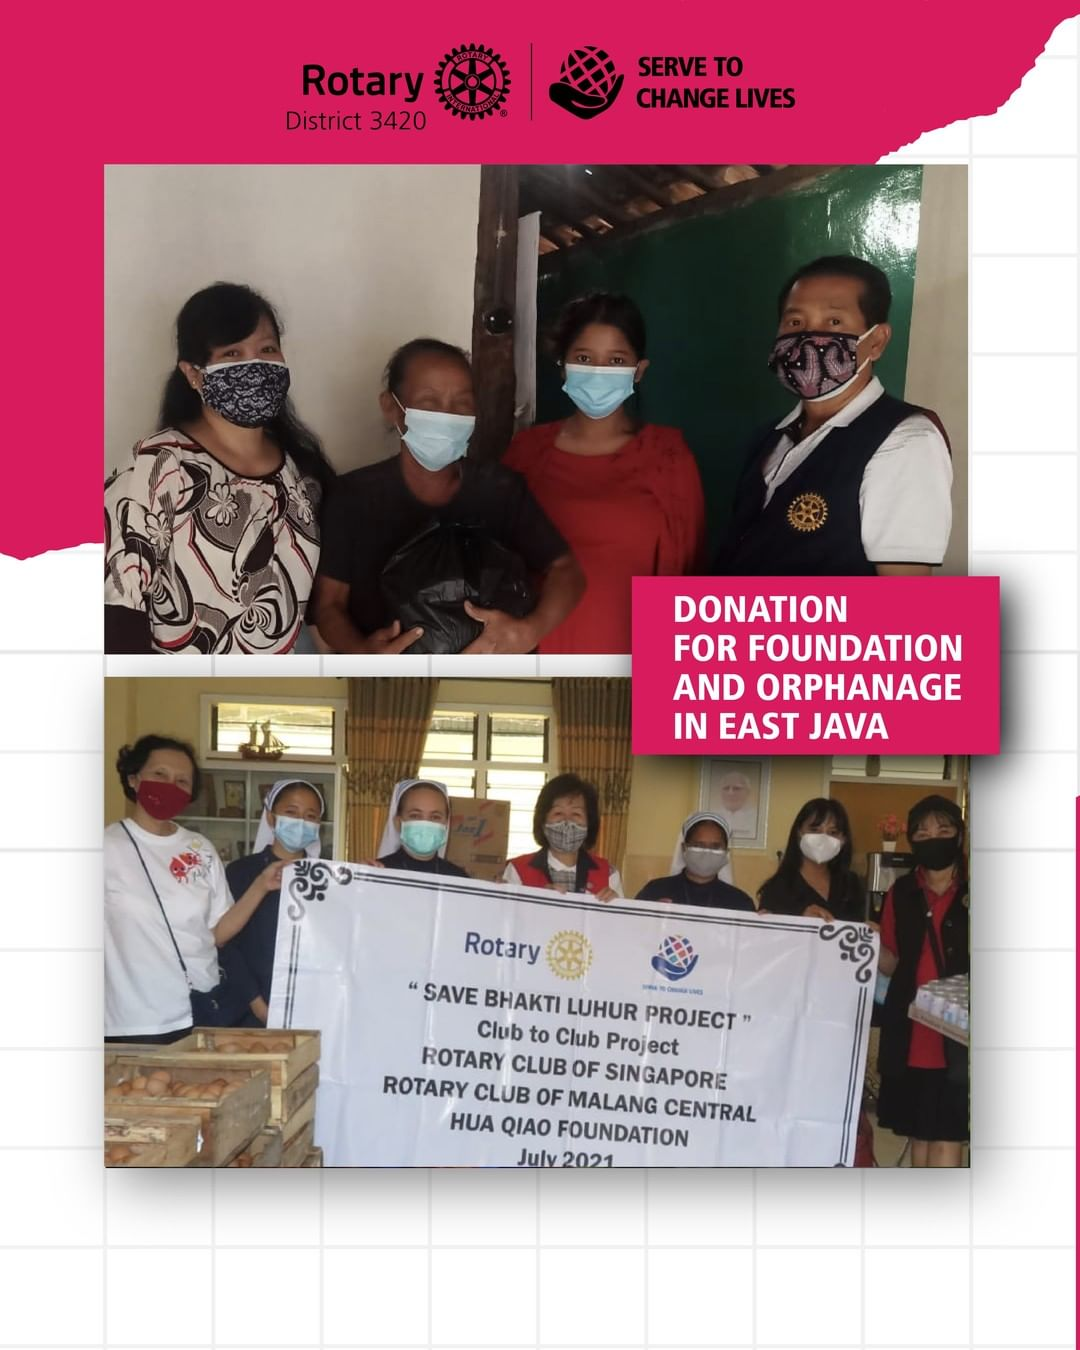 Donation for Foundation and Orphanage in East Java